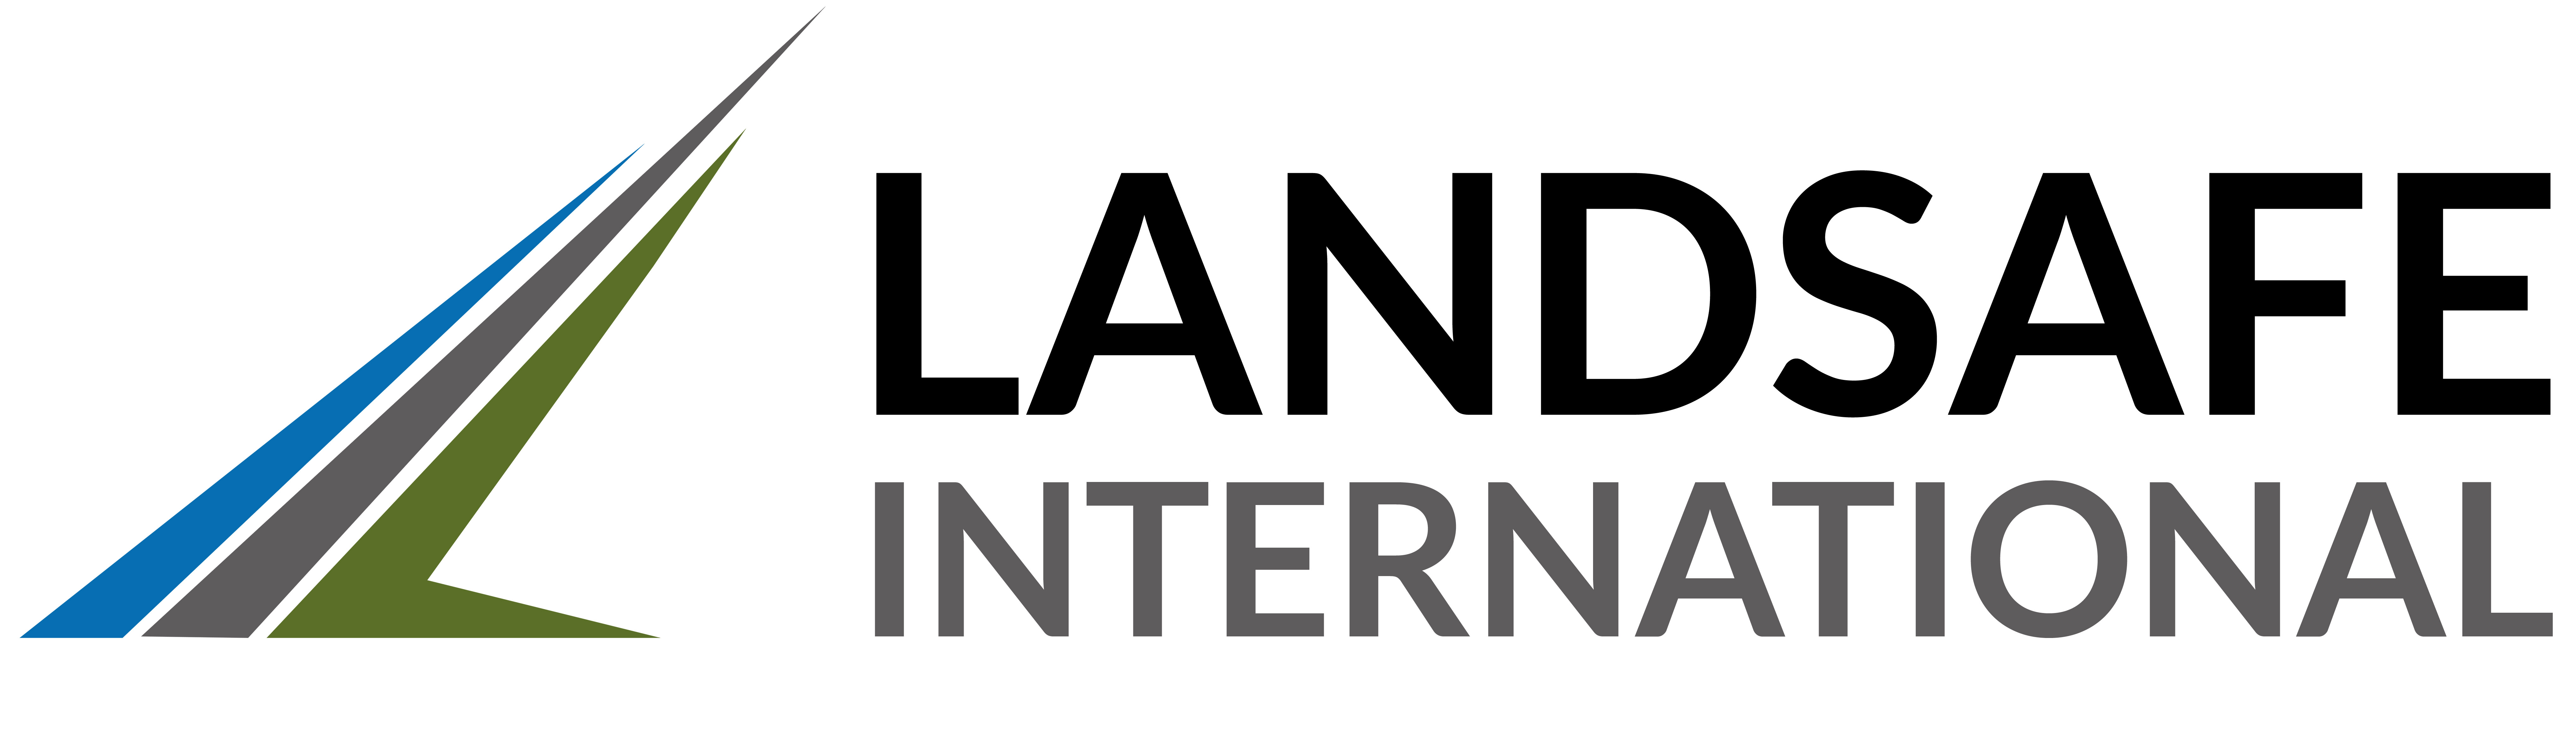 Landsafe International logo